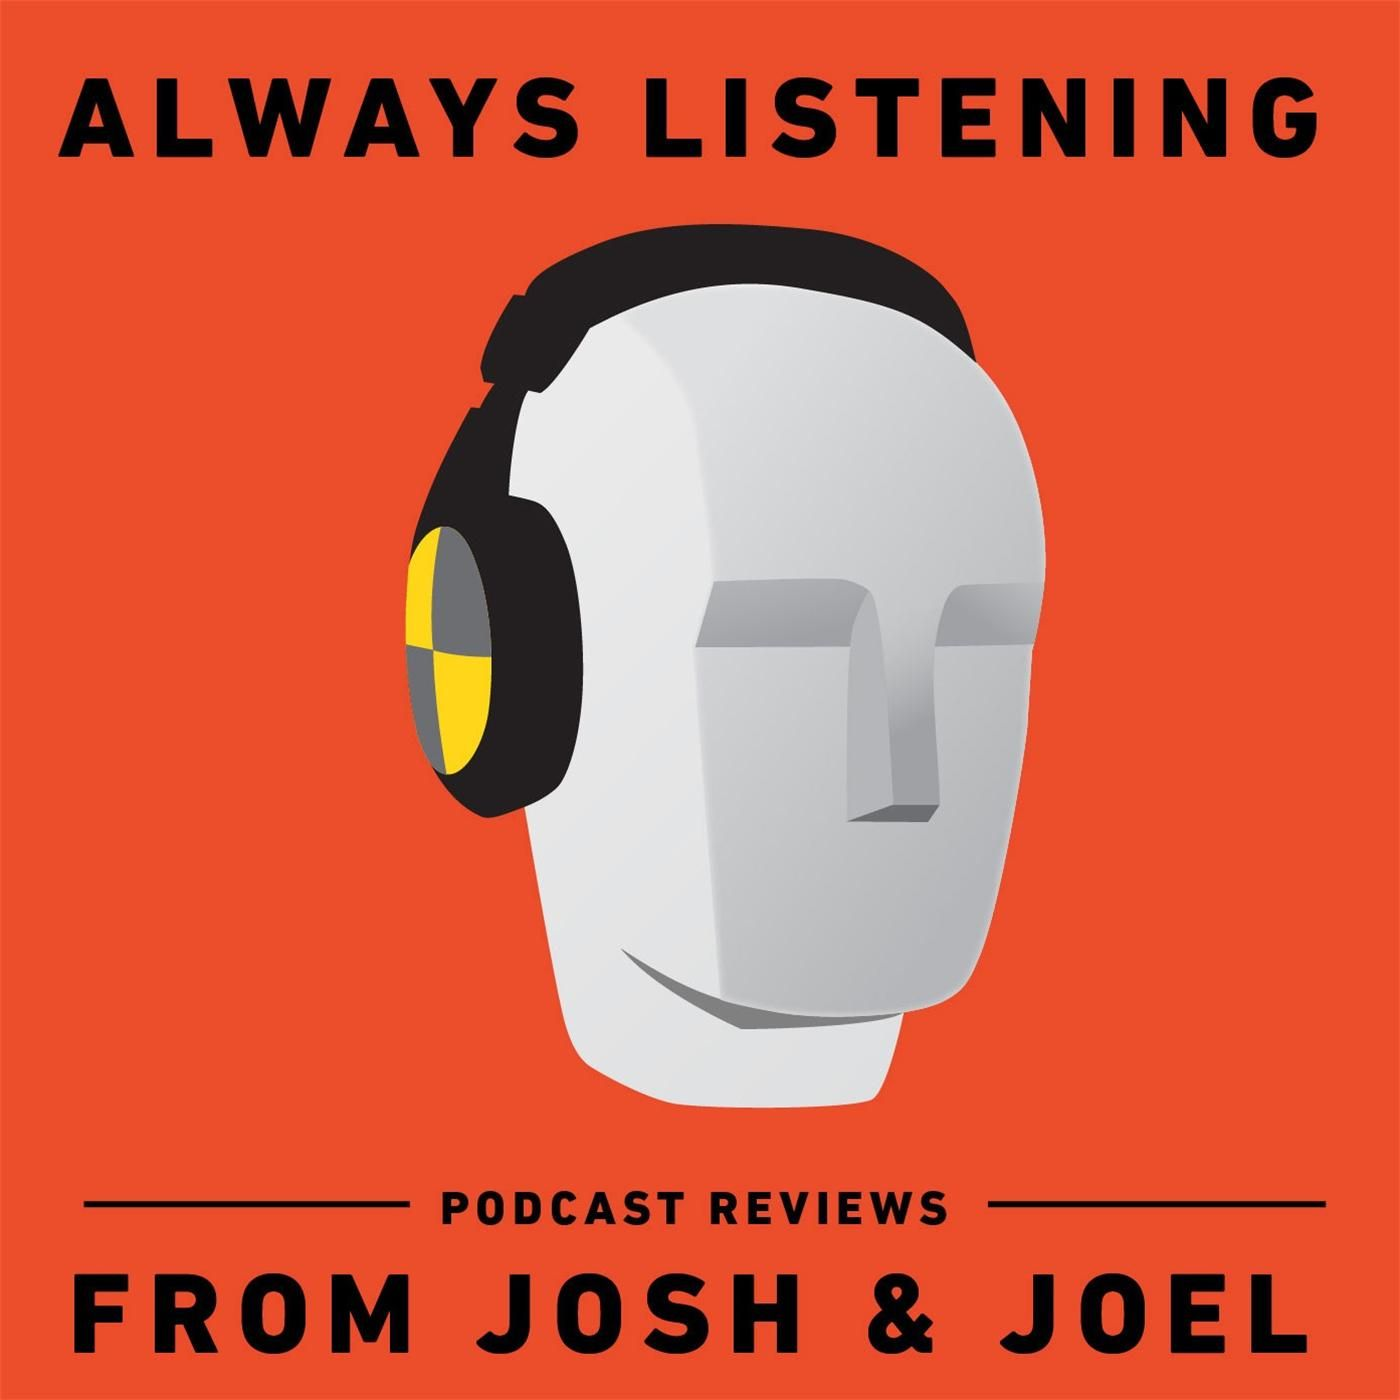 Always Listening: Podcast Reviews